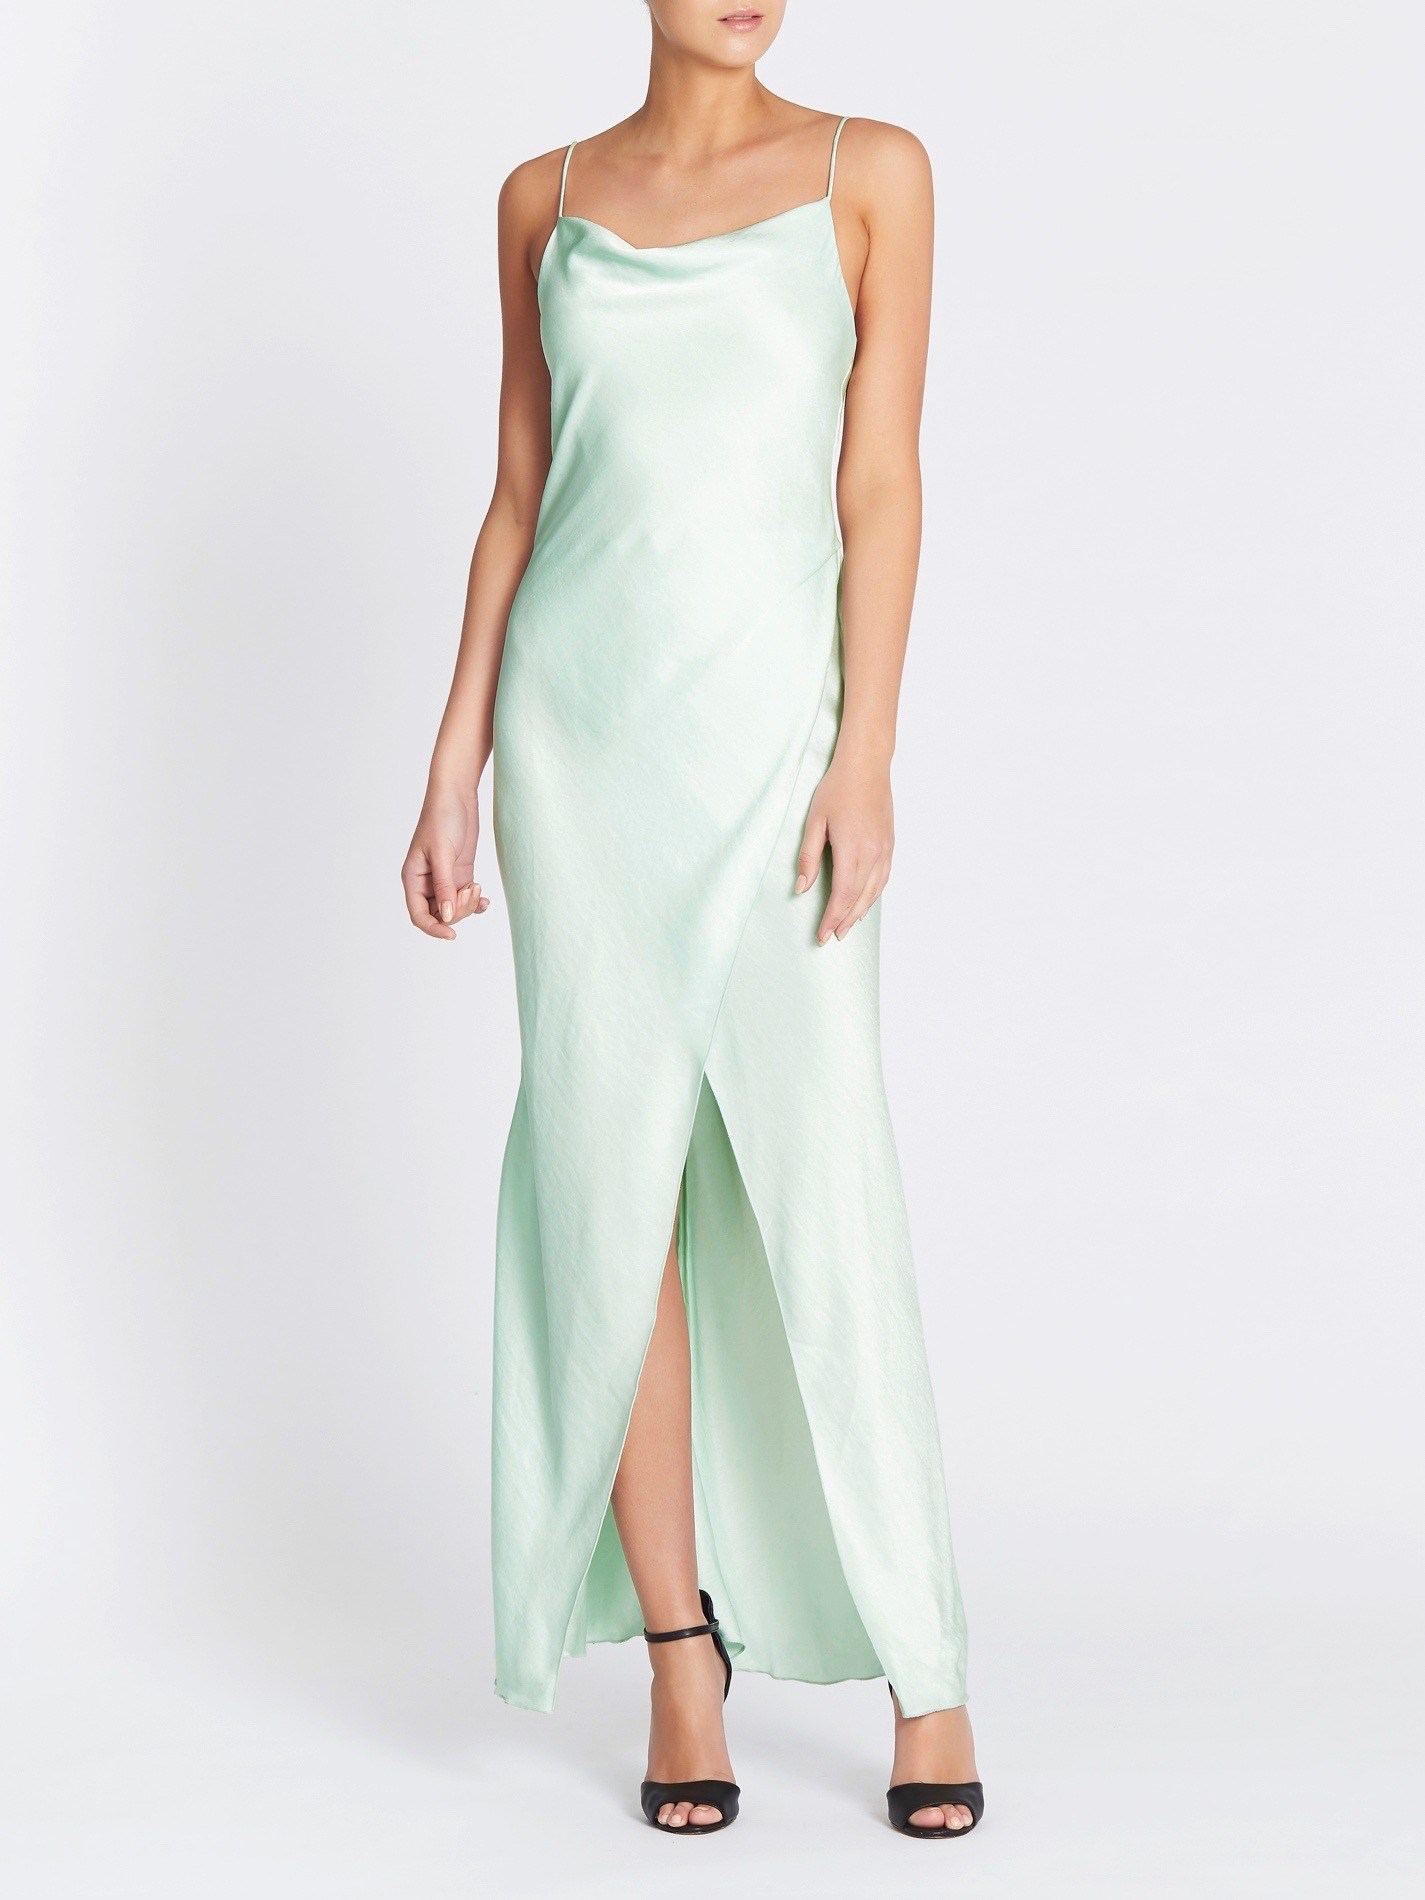 2e92f8b0767e Camilla and Marc Bowery Slip Dress - ICE MINT | Garmentory